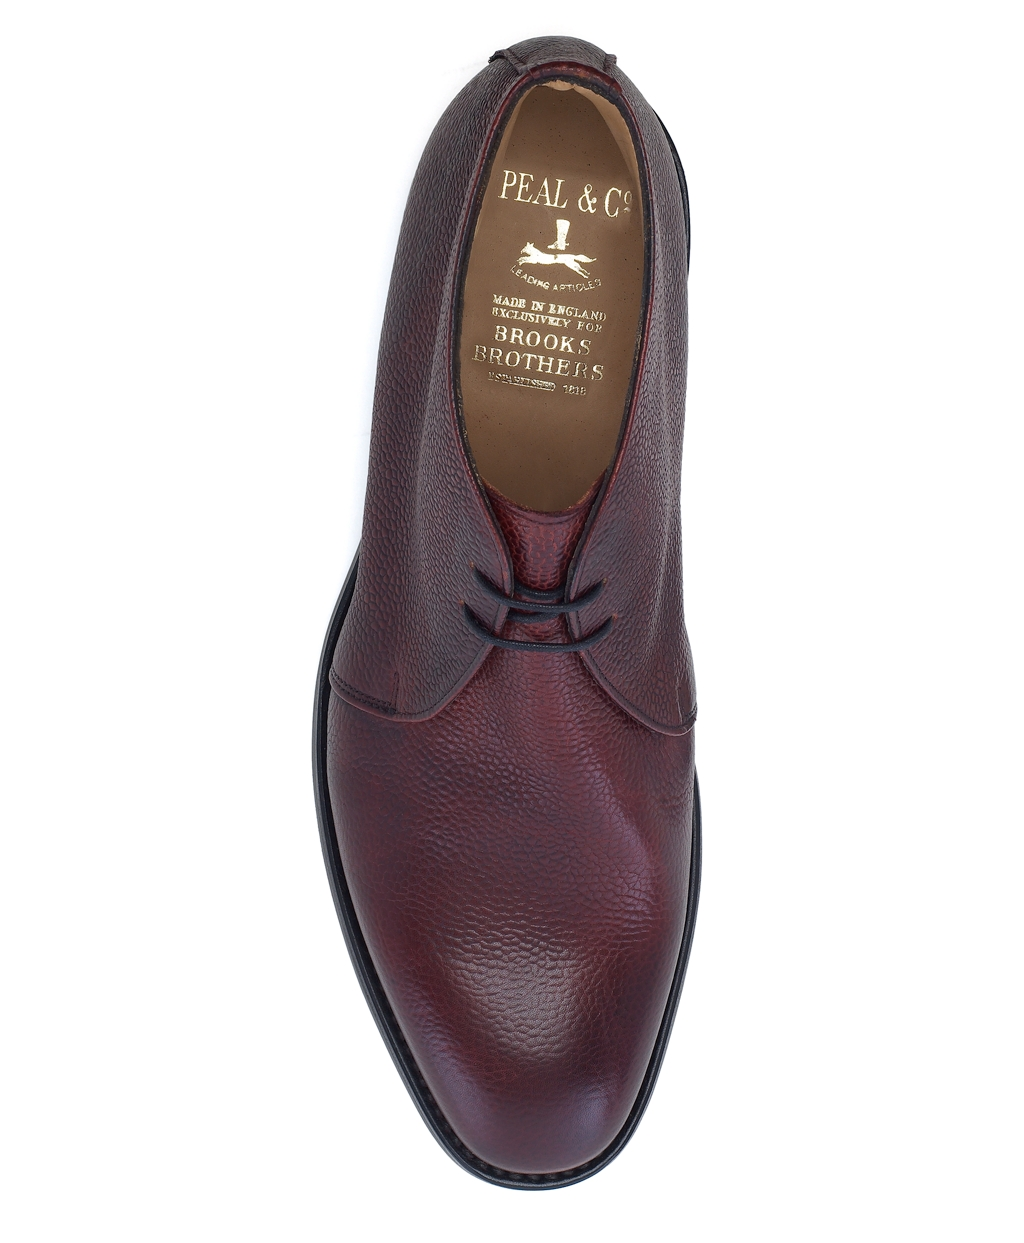 0f13e617e678a Lyst - Brooks Brothers Peal Co Pebble Grain Chukka Boots in Brown ...